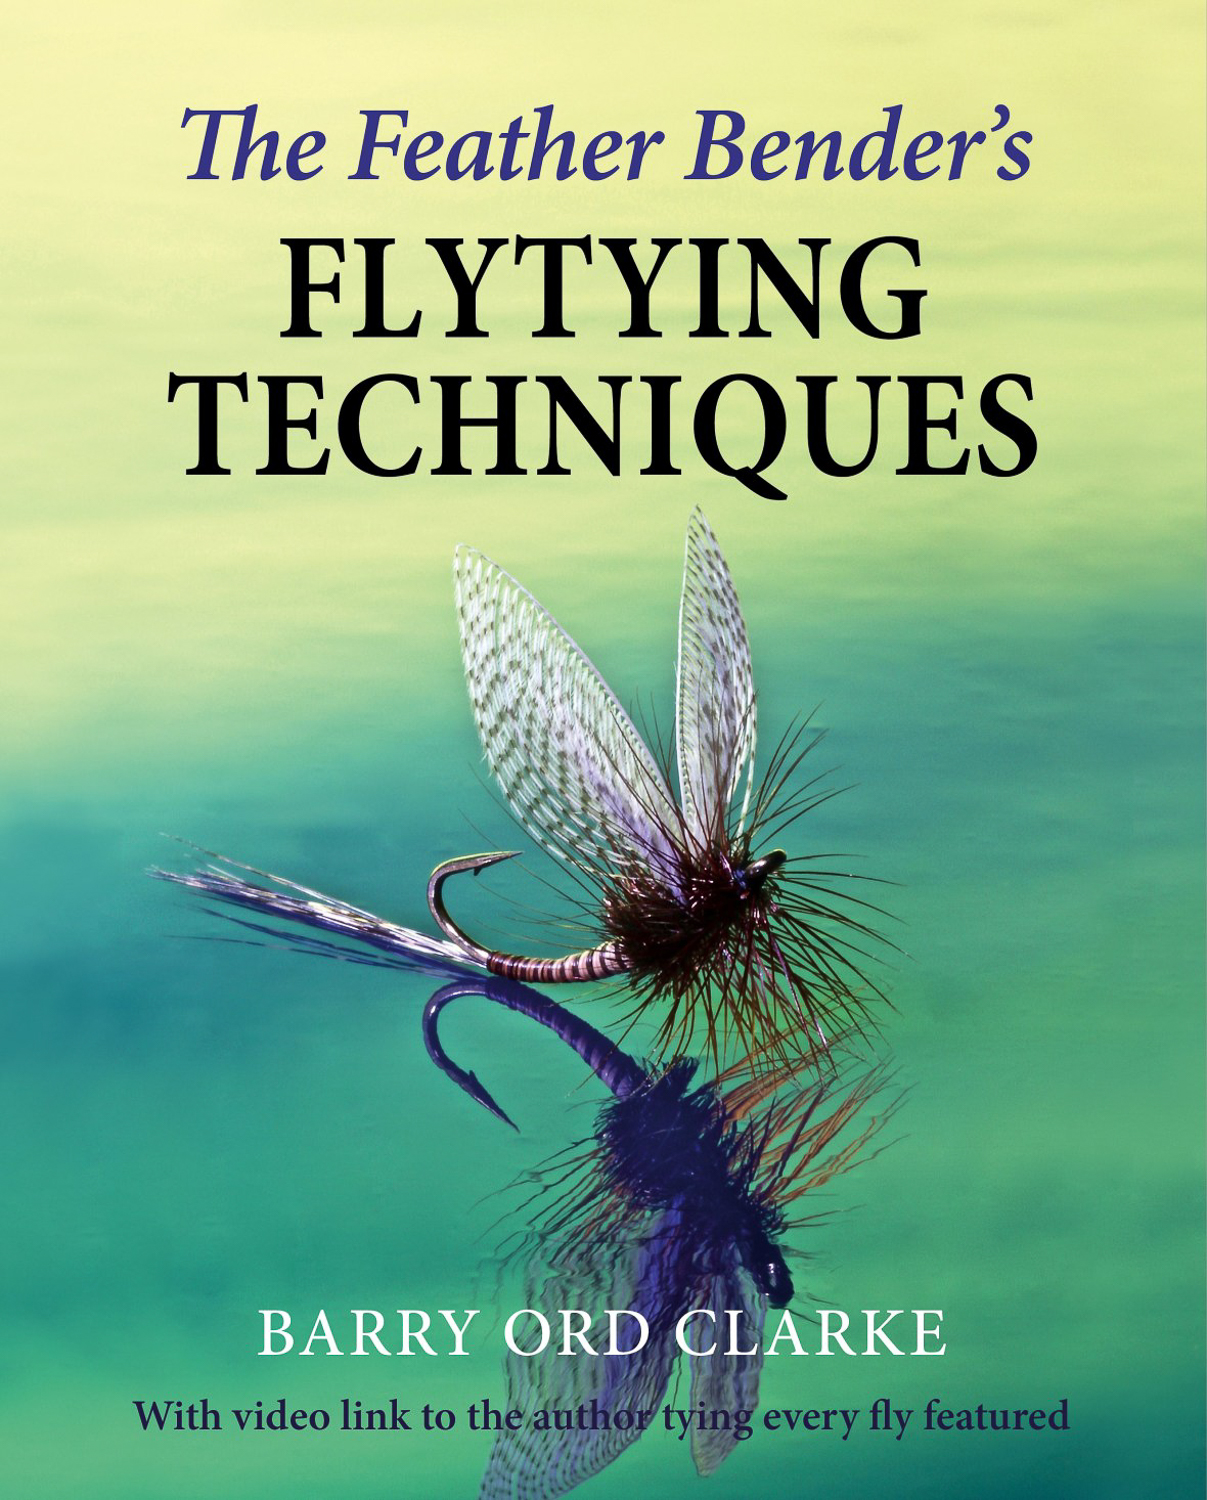 Feather-Benders-Flytying-Techniques